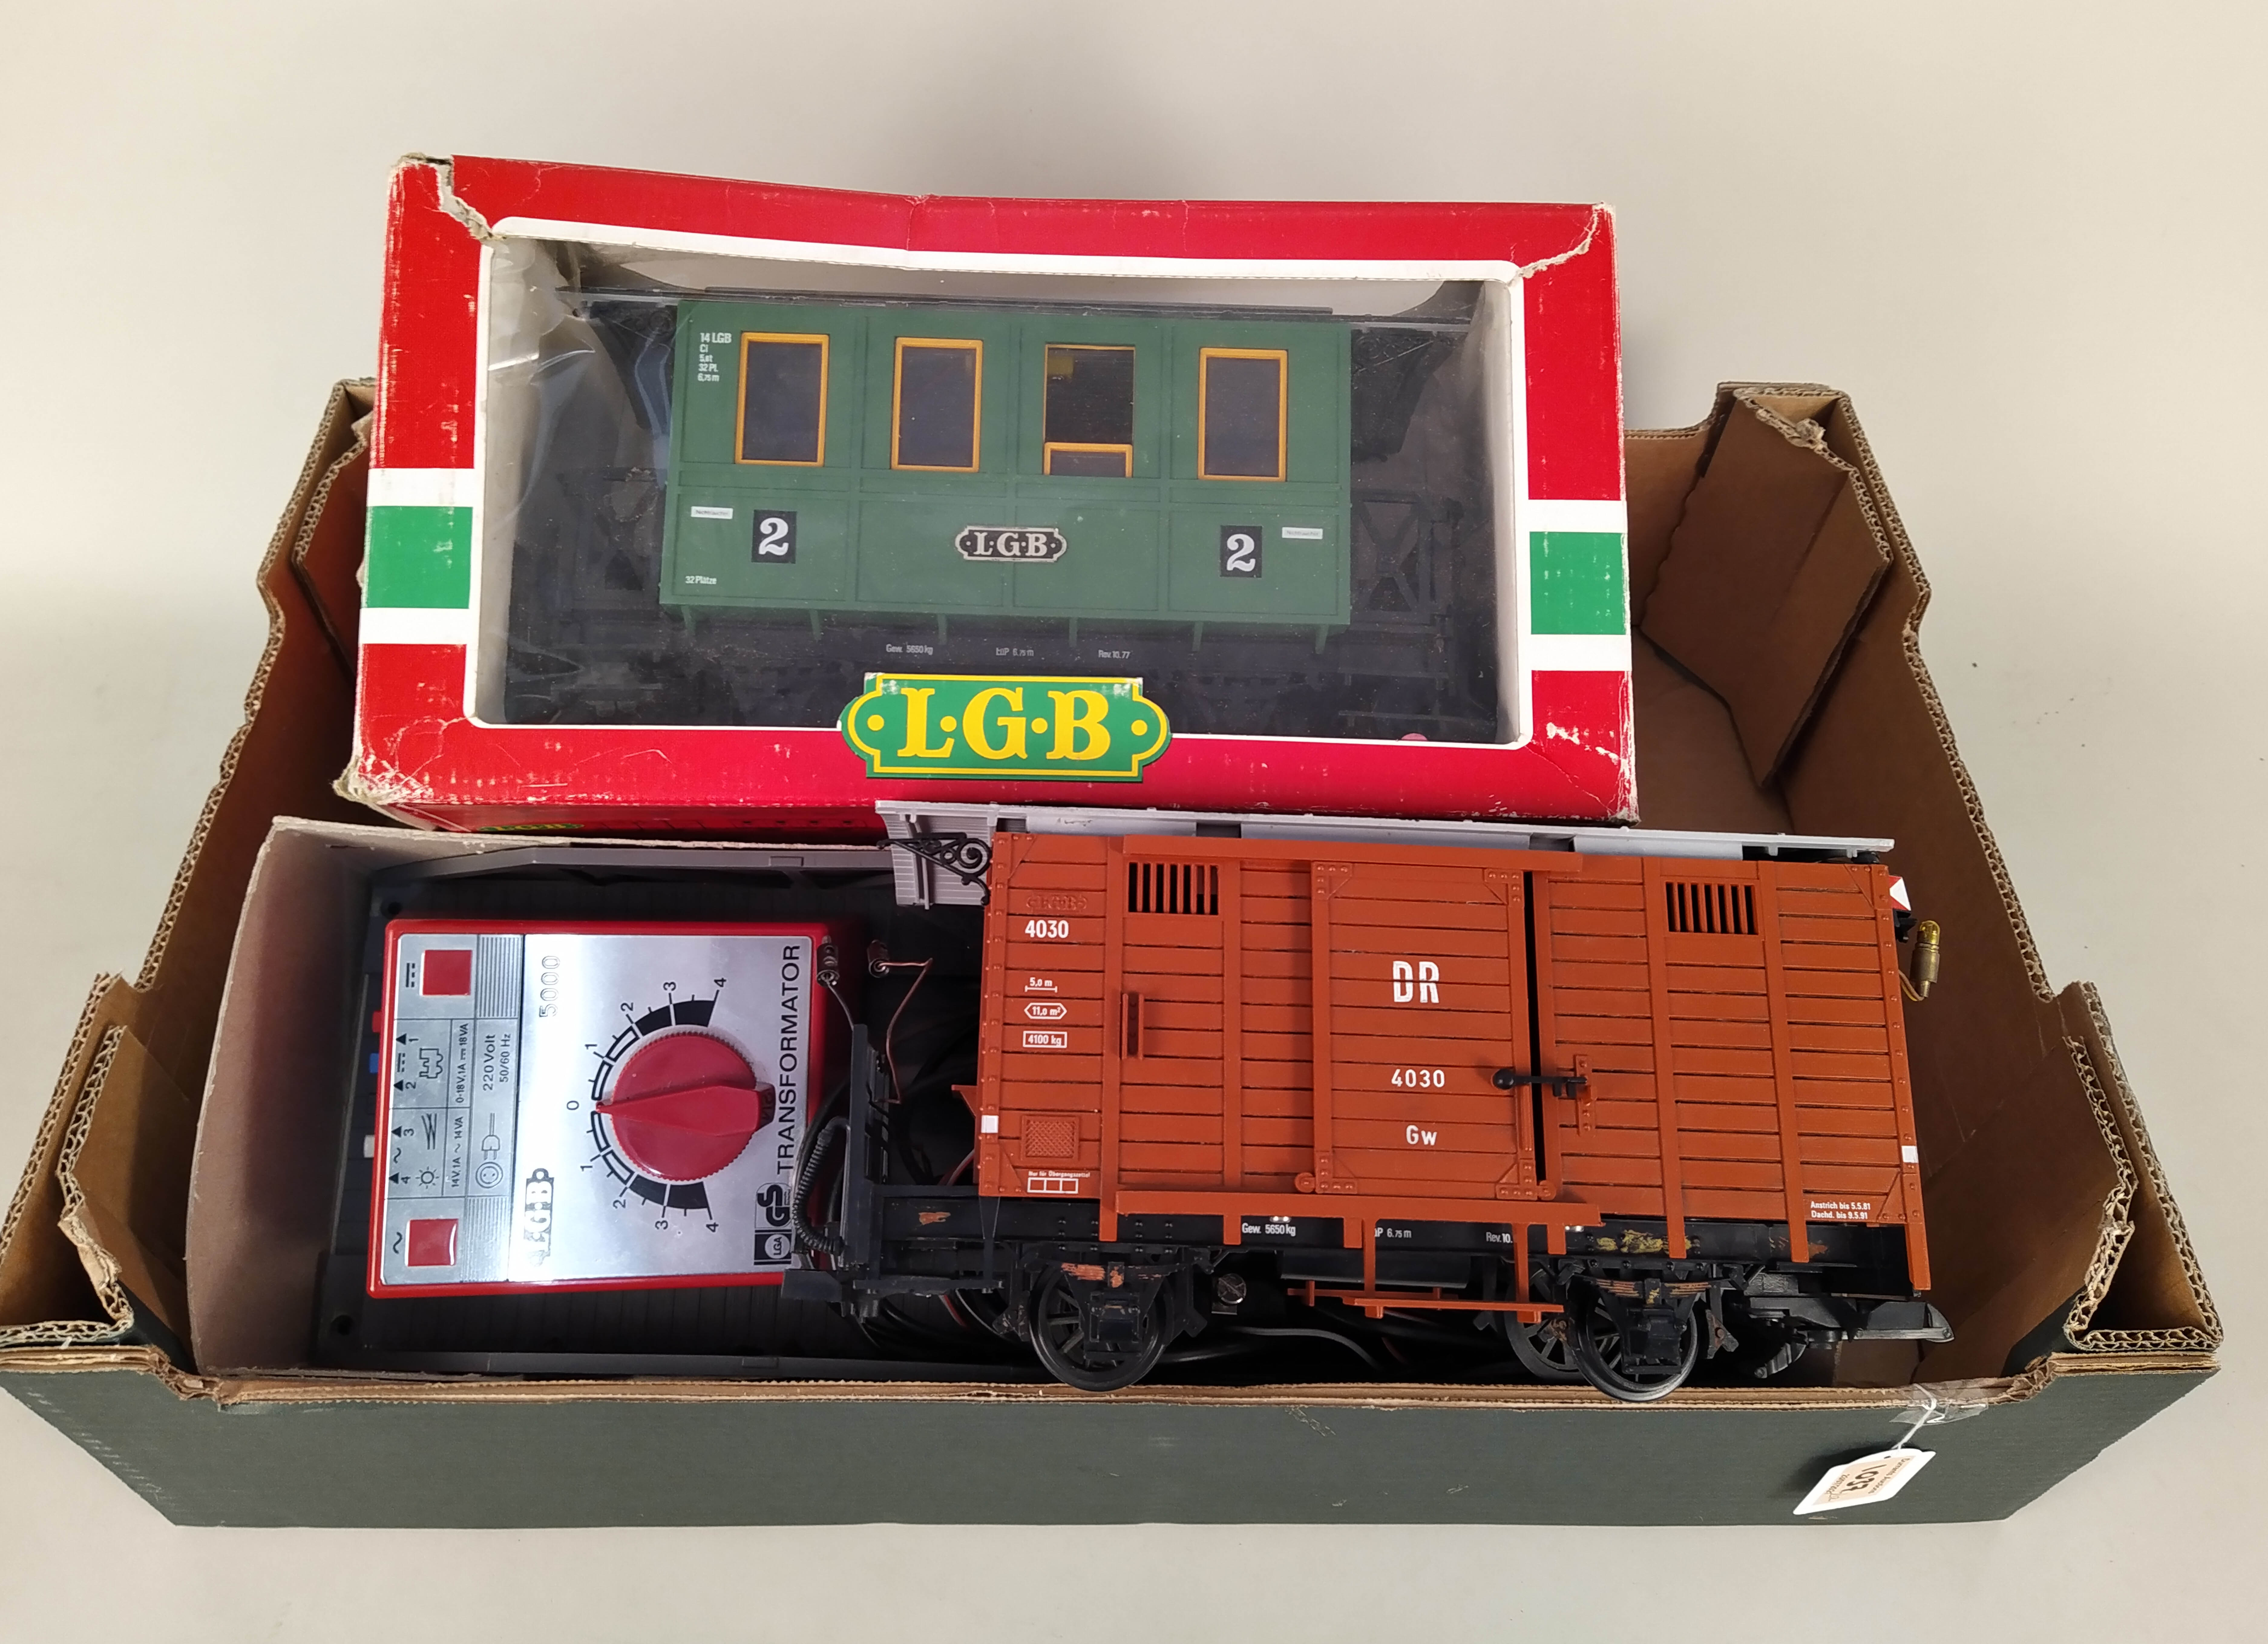 A LGB (Lehmann-Gross-Bahn) 2017D boxed engine, a boxed carriage 3010, an unboxed carriage, - Image 3 of 3